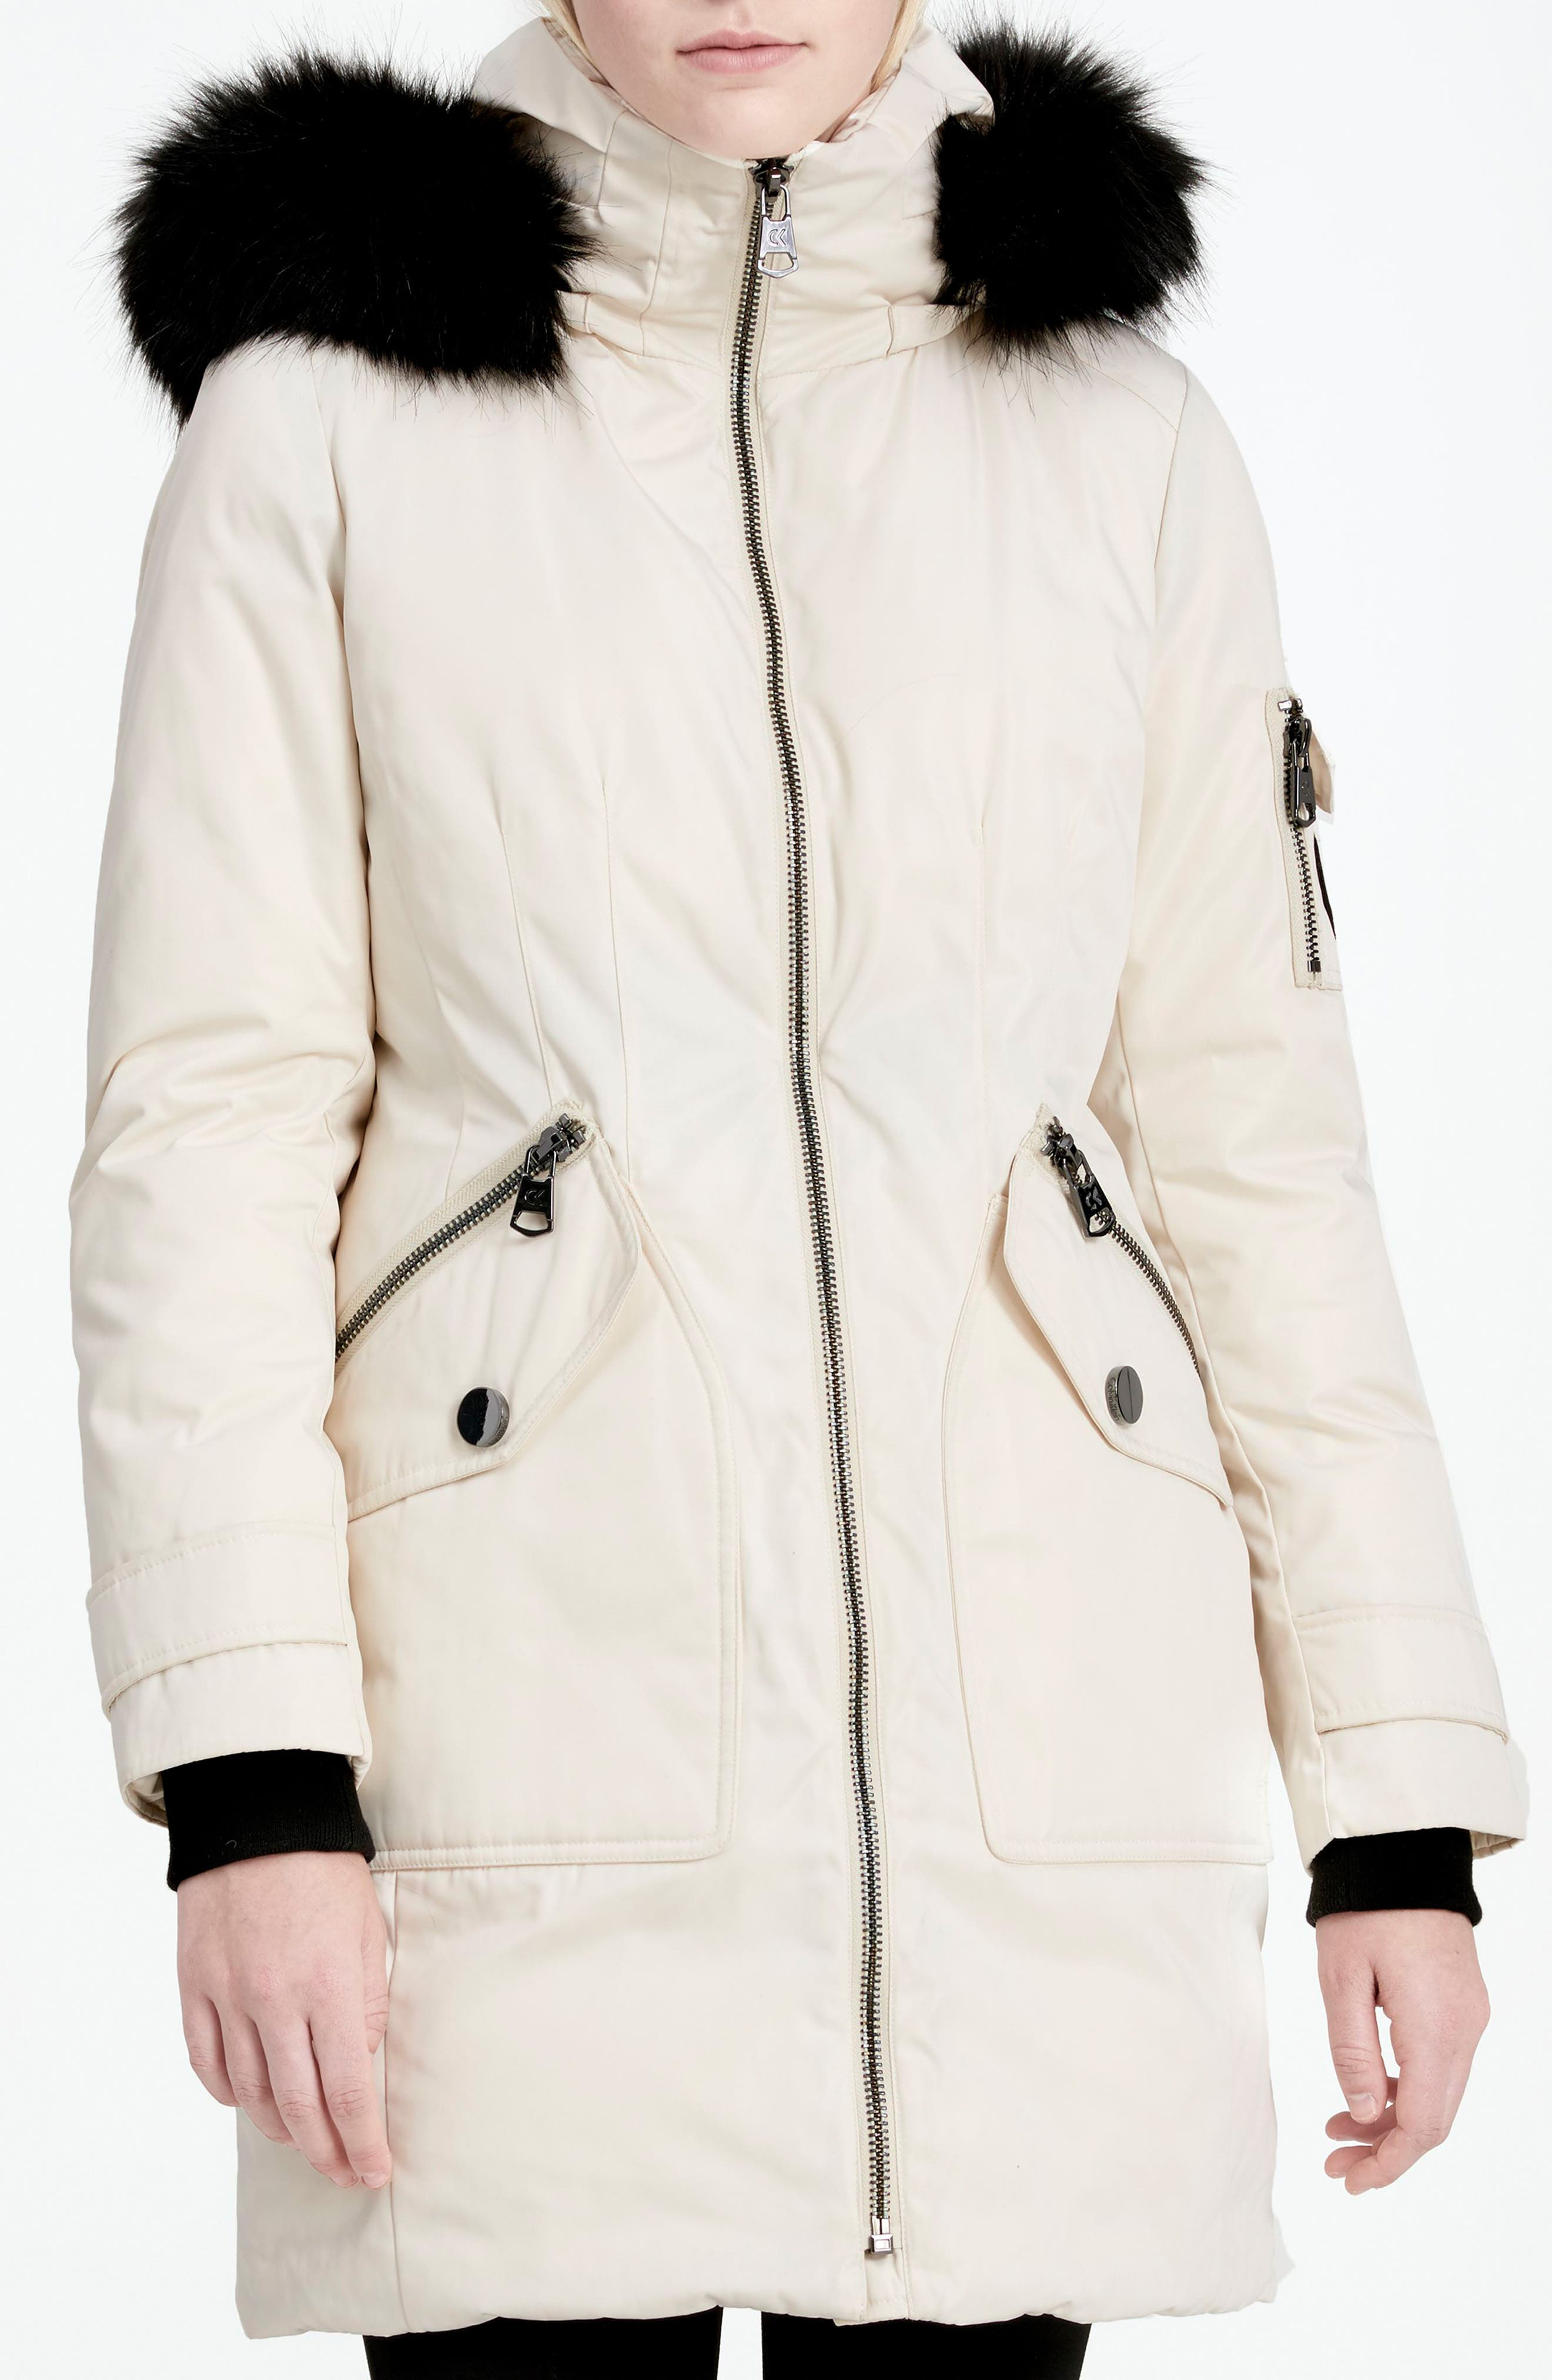 Calvien Klein Hooded Down Parka with Removable Faux Fur Collar,                             Alternate thumbnail 10, color,